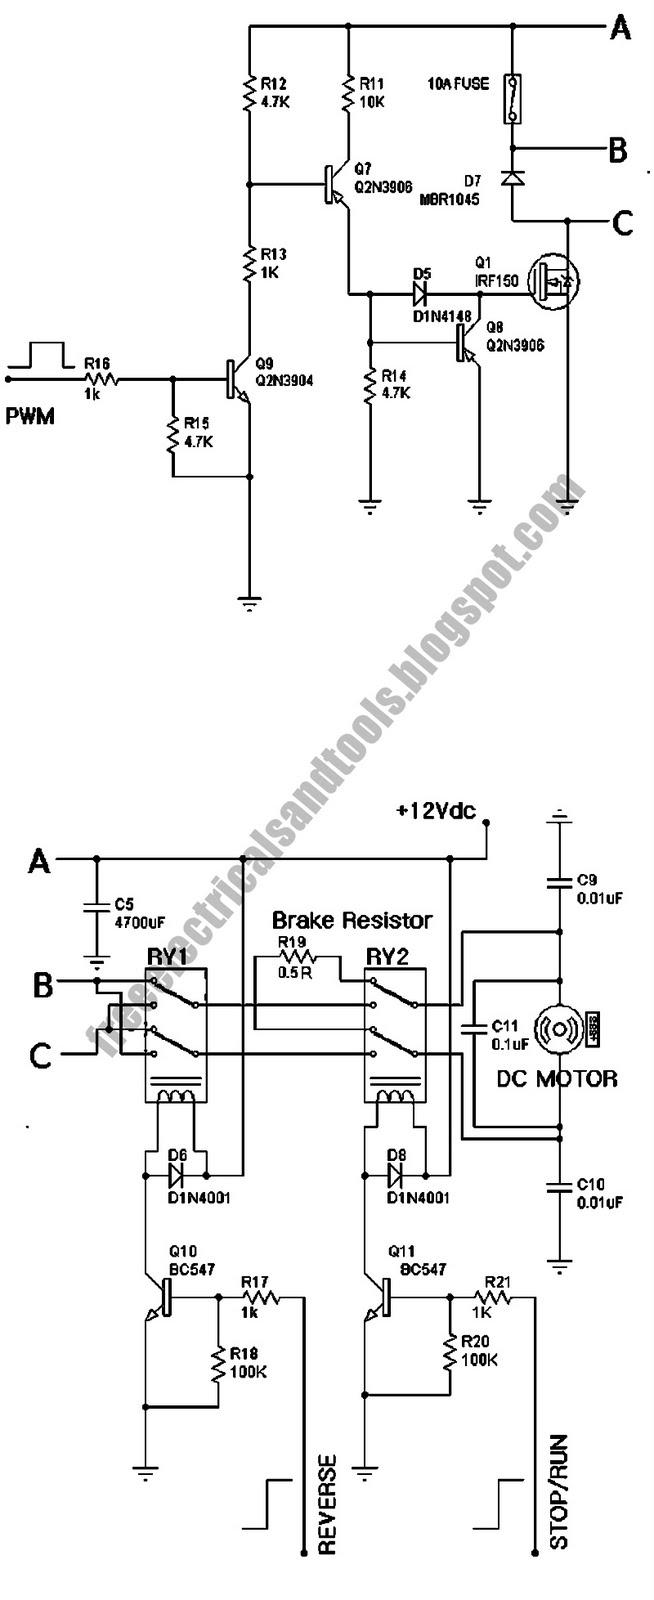 Free Schematic Diagram: PWM Speed Control Circuit Using